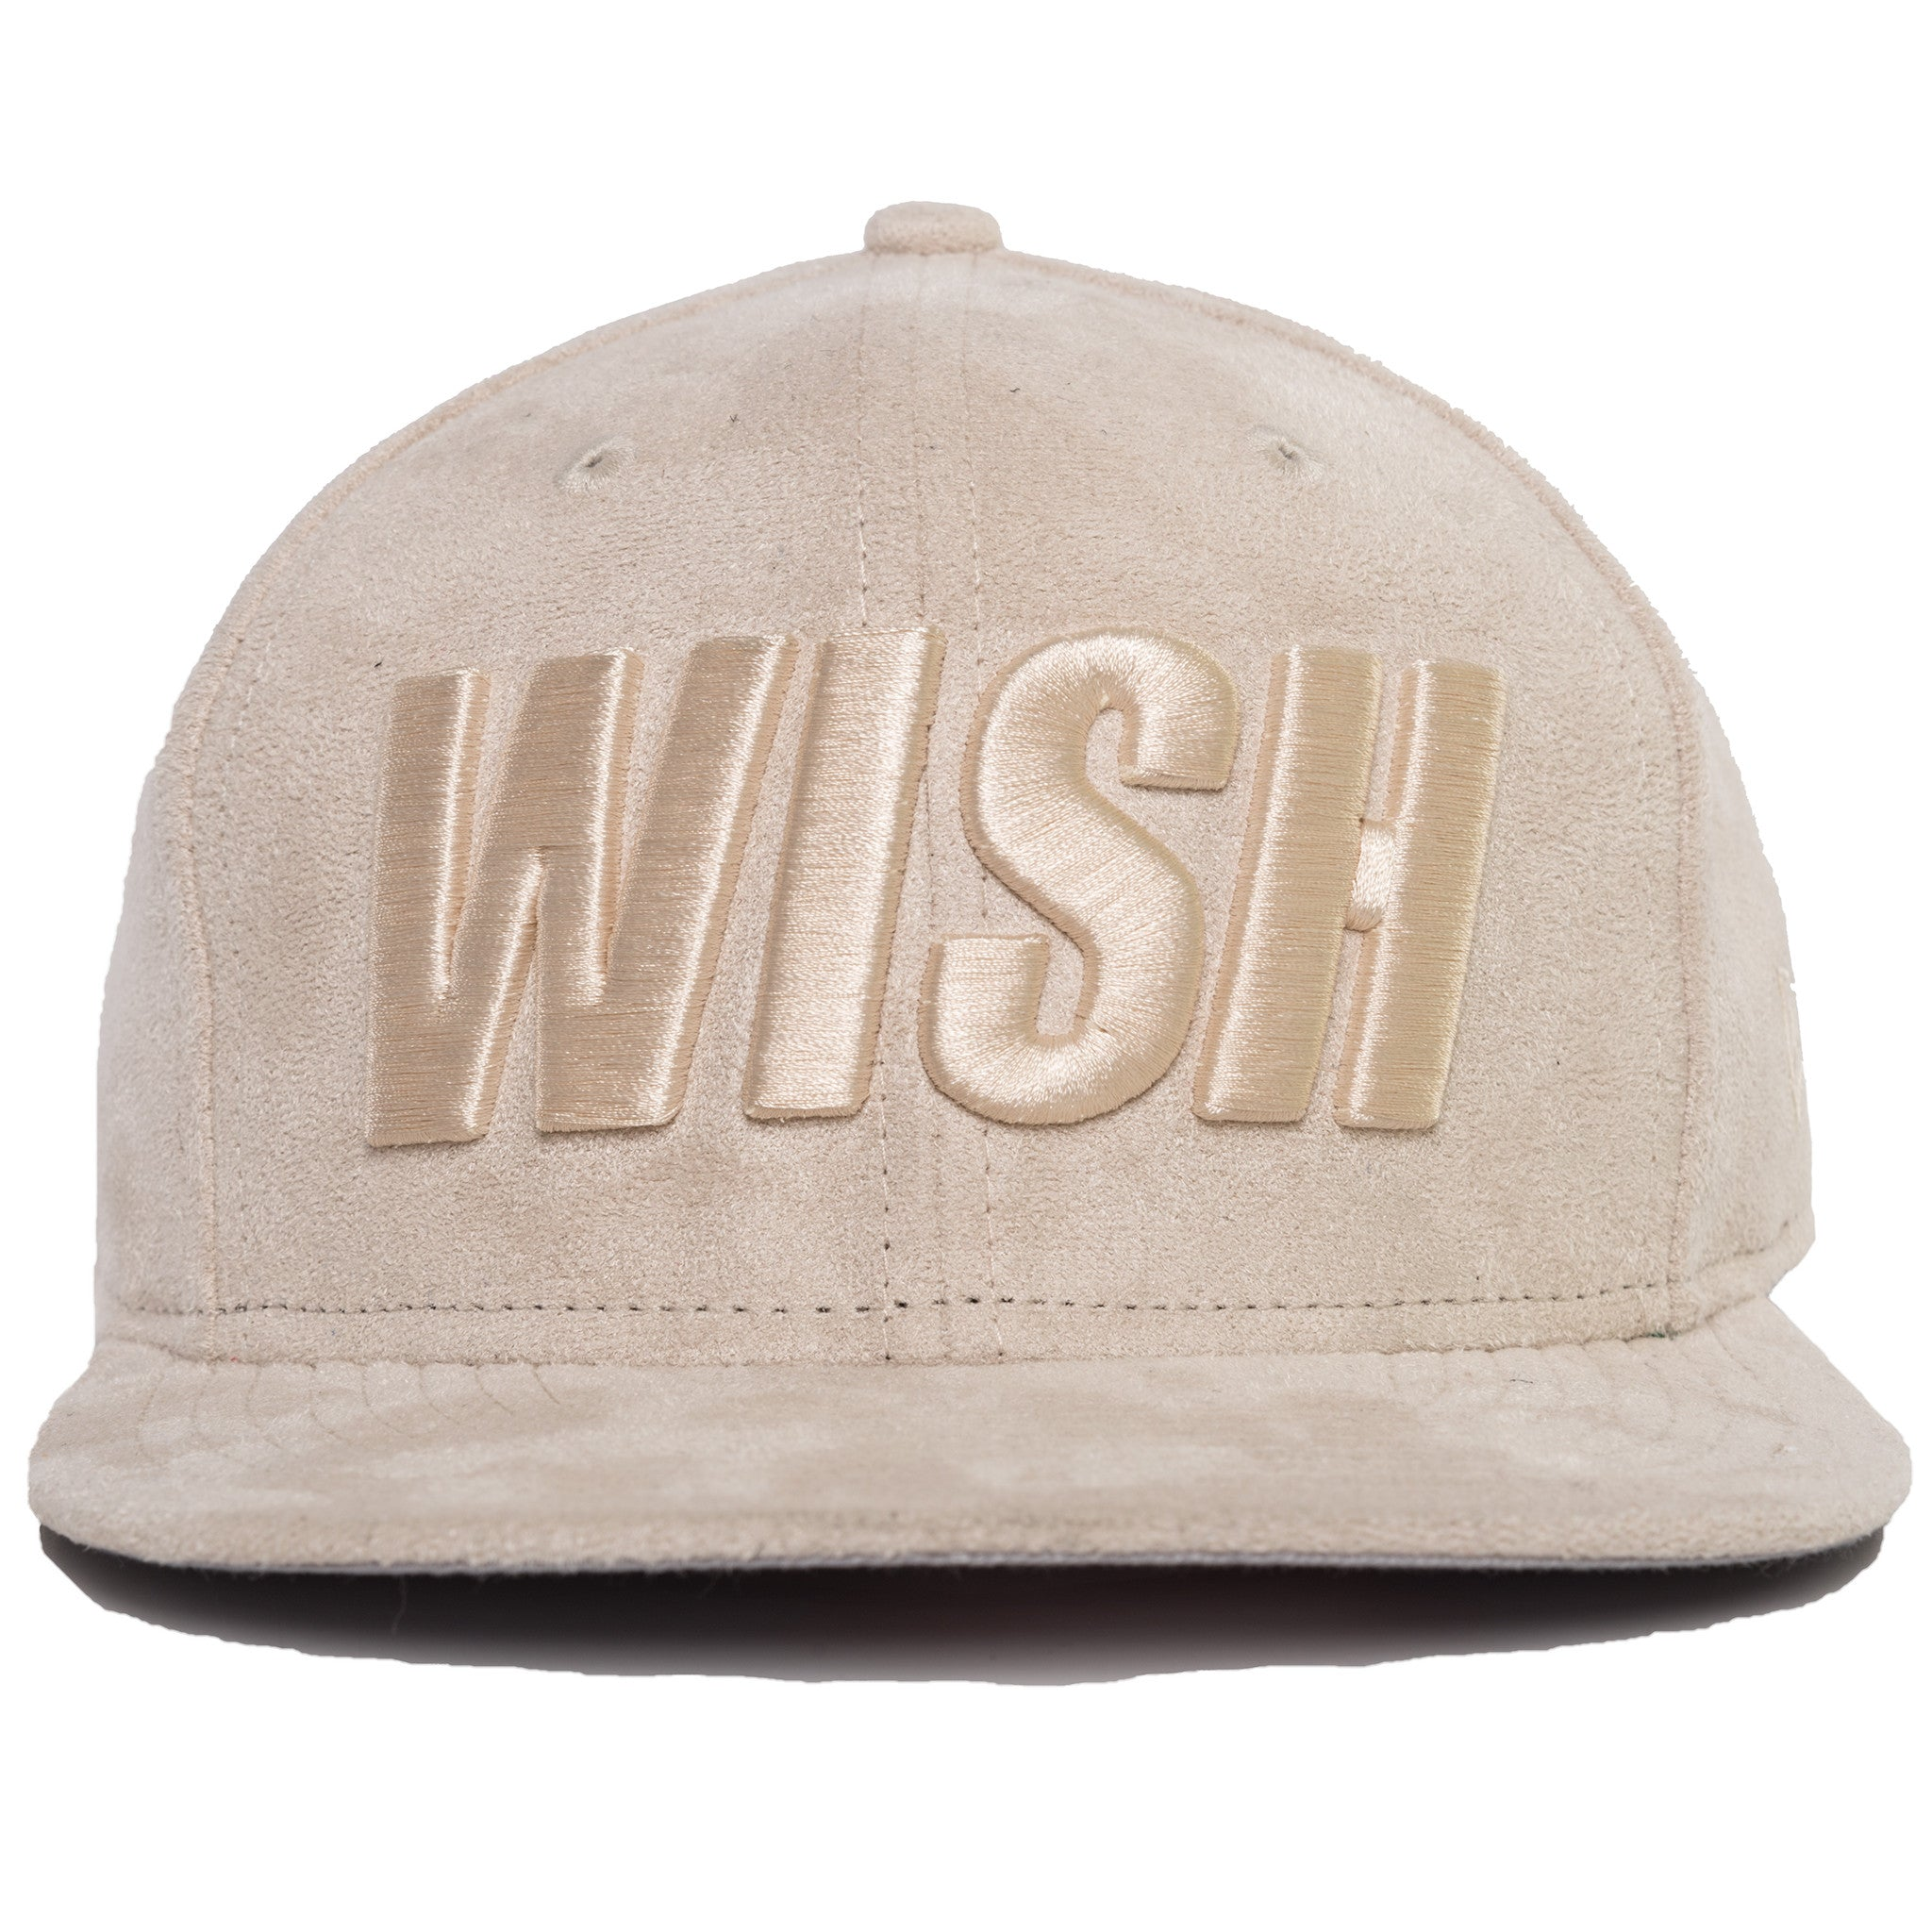 New Era x Wish 9Fifty of Snap